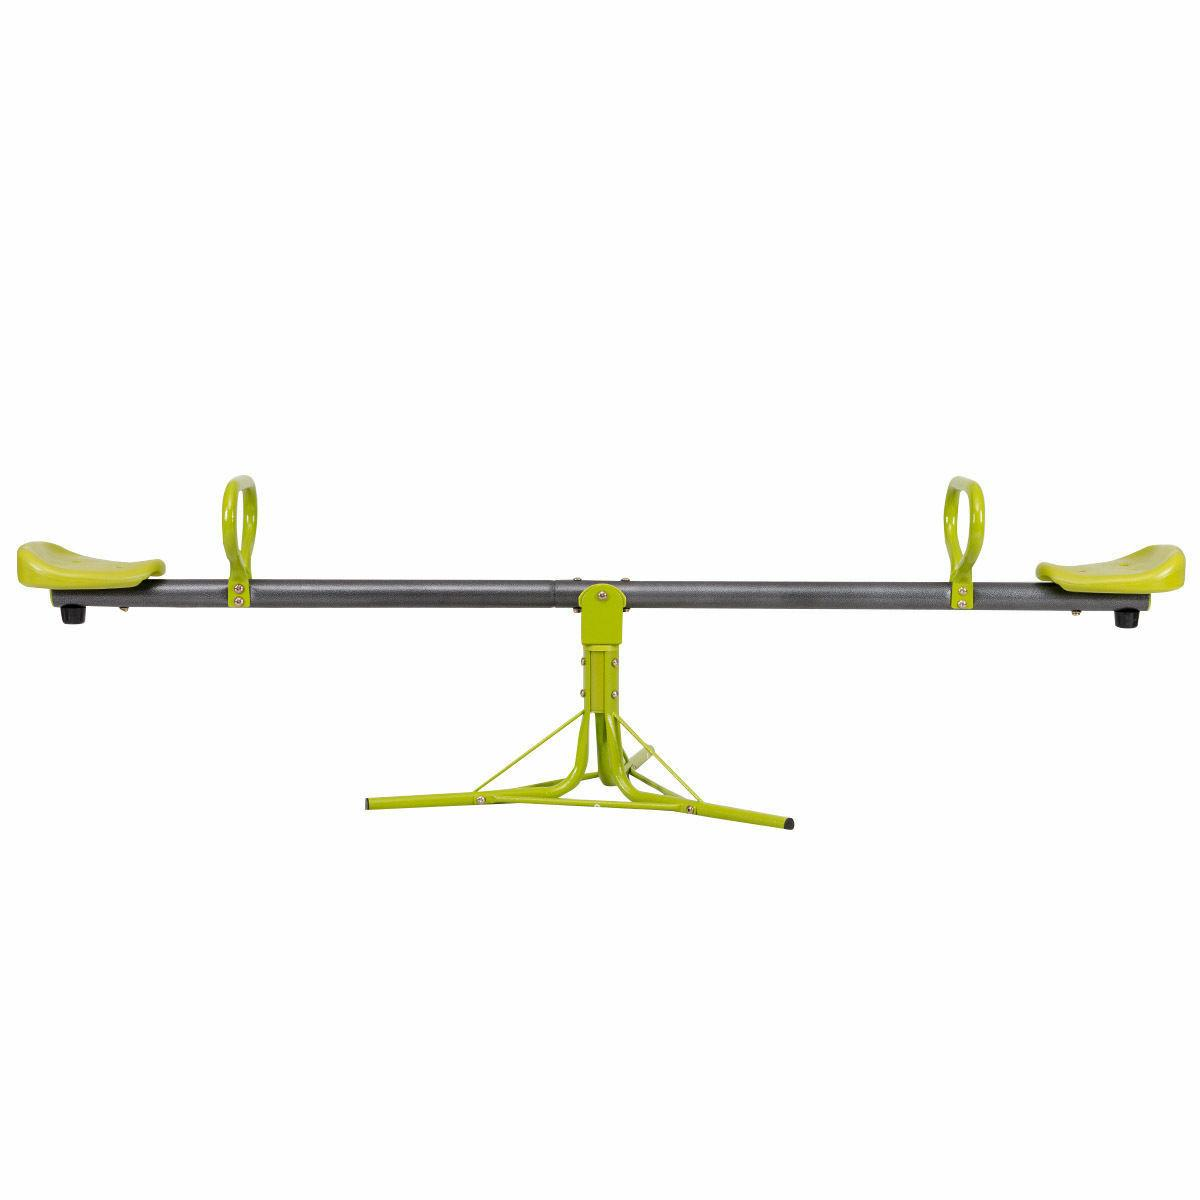 360 Degree Outdoor Kids Seesaw Swing Playground Play